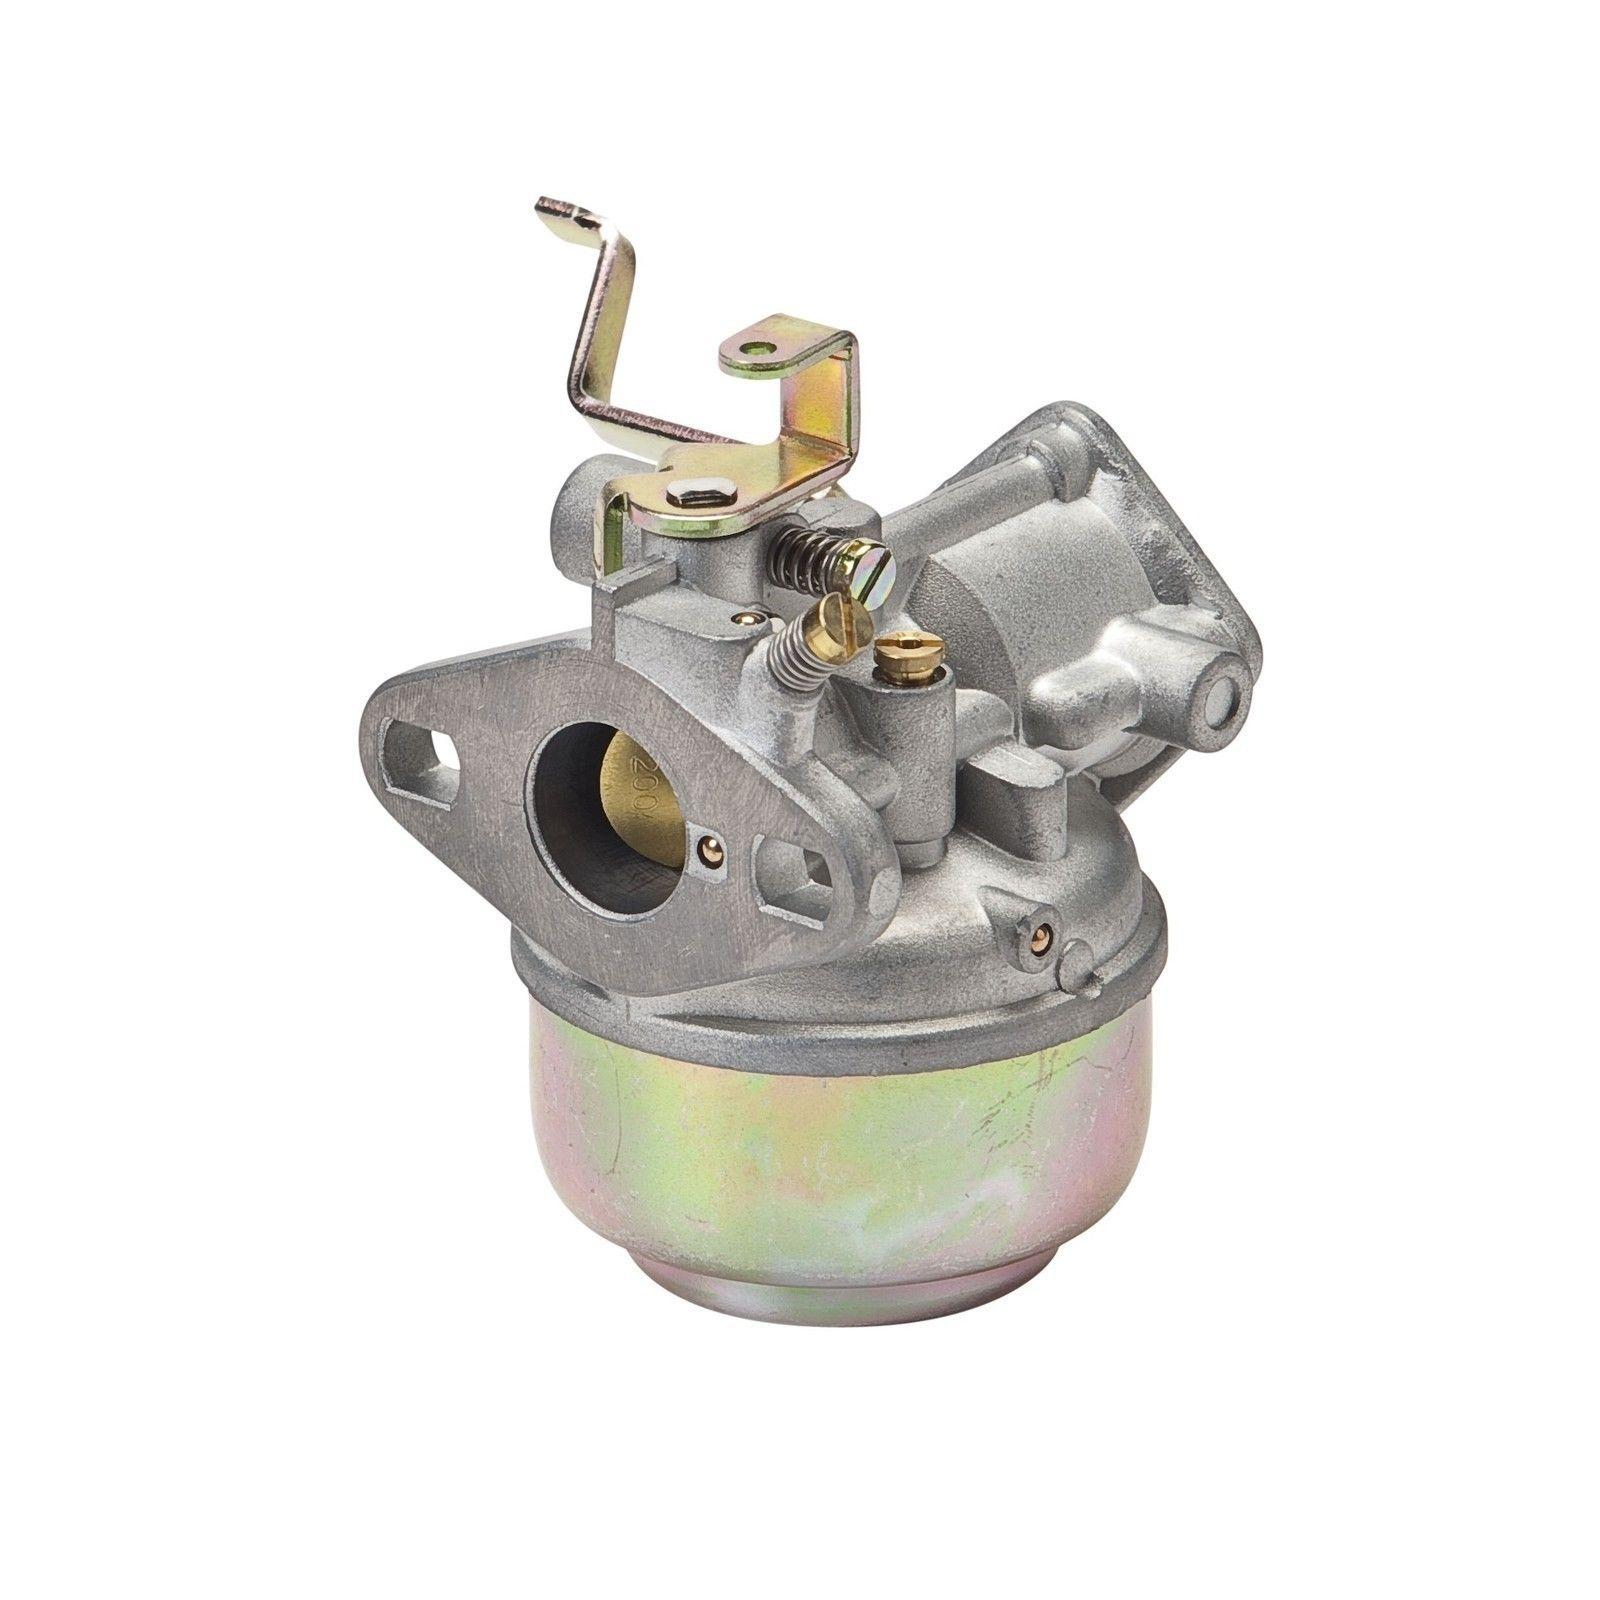 Carburetor for Subaru Robin EC08 EC10 EC12 engine carburettor replacement part # 106-62516-00